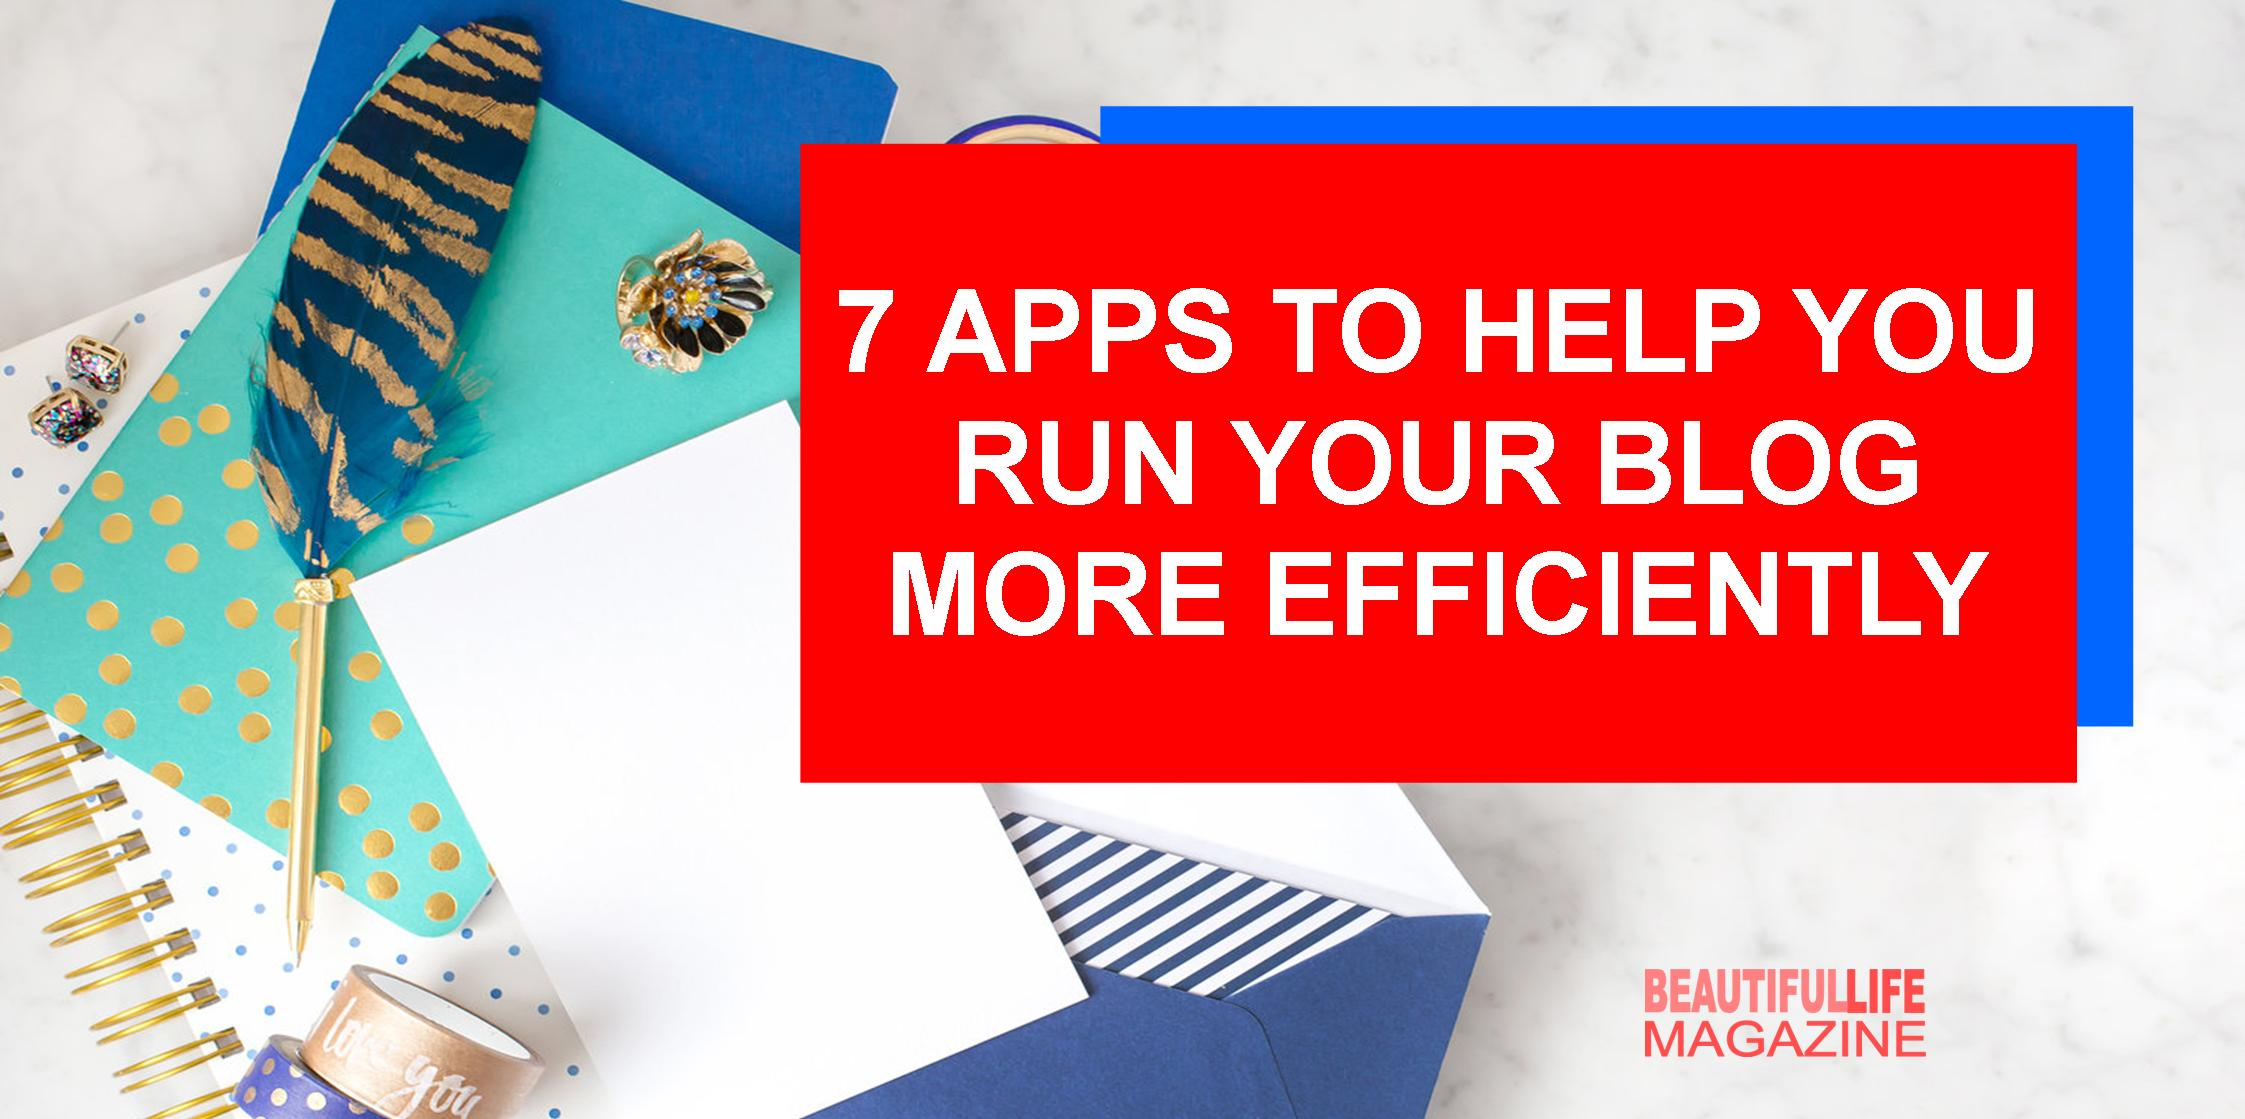 So I've tested app after app to make sure I can quickly plan, write, edit, find the info I need, or share info with someone else. Here are 7 of my favorites apps and how I use them to keep your blog running smoothly all week long, and you can use to help you run your blog more efficiently.